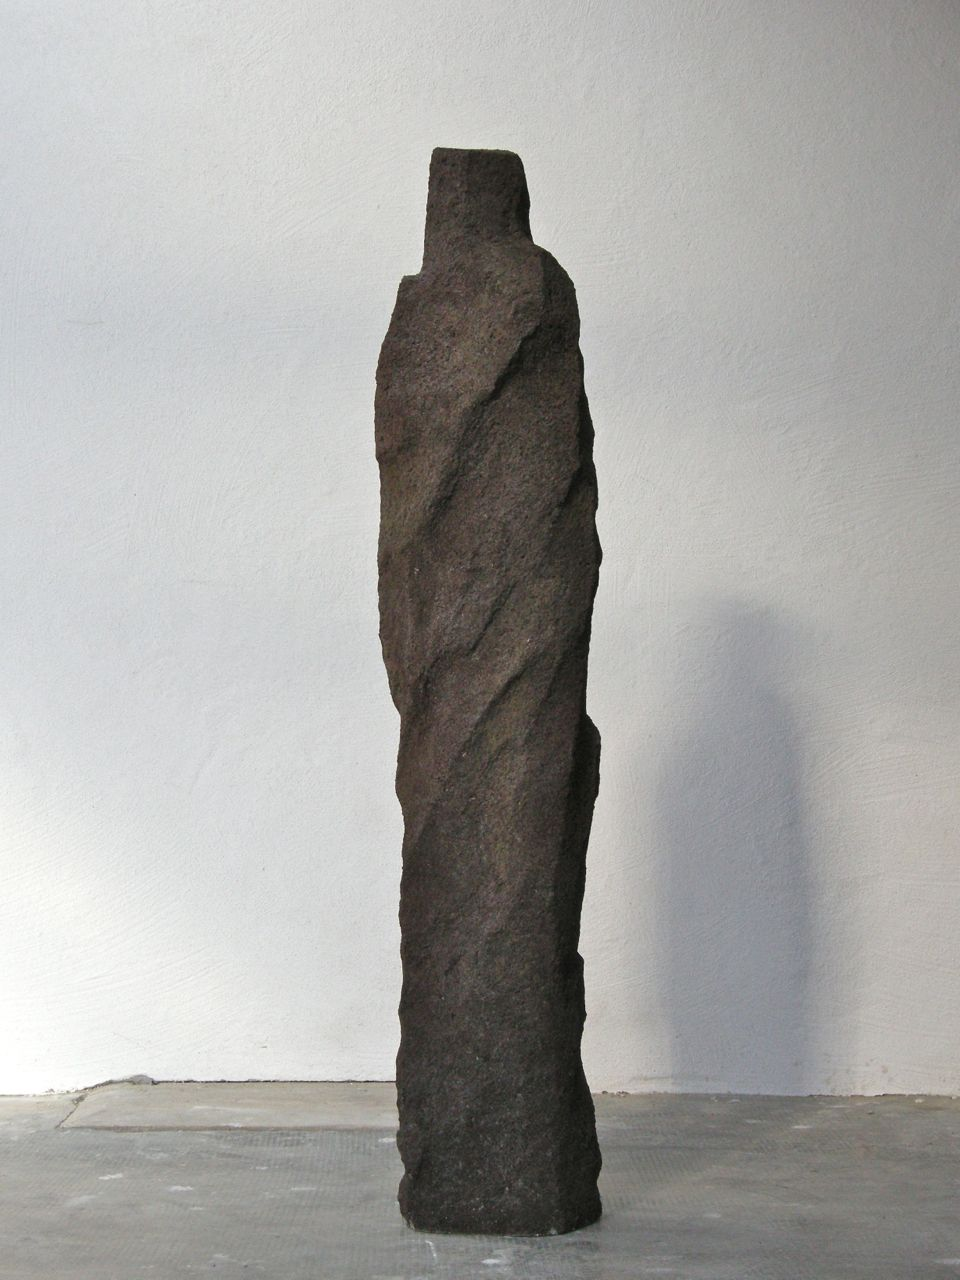 Ancient shape II, 2013, concrete, 30 x 20 x 140 cm